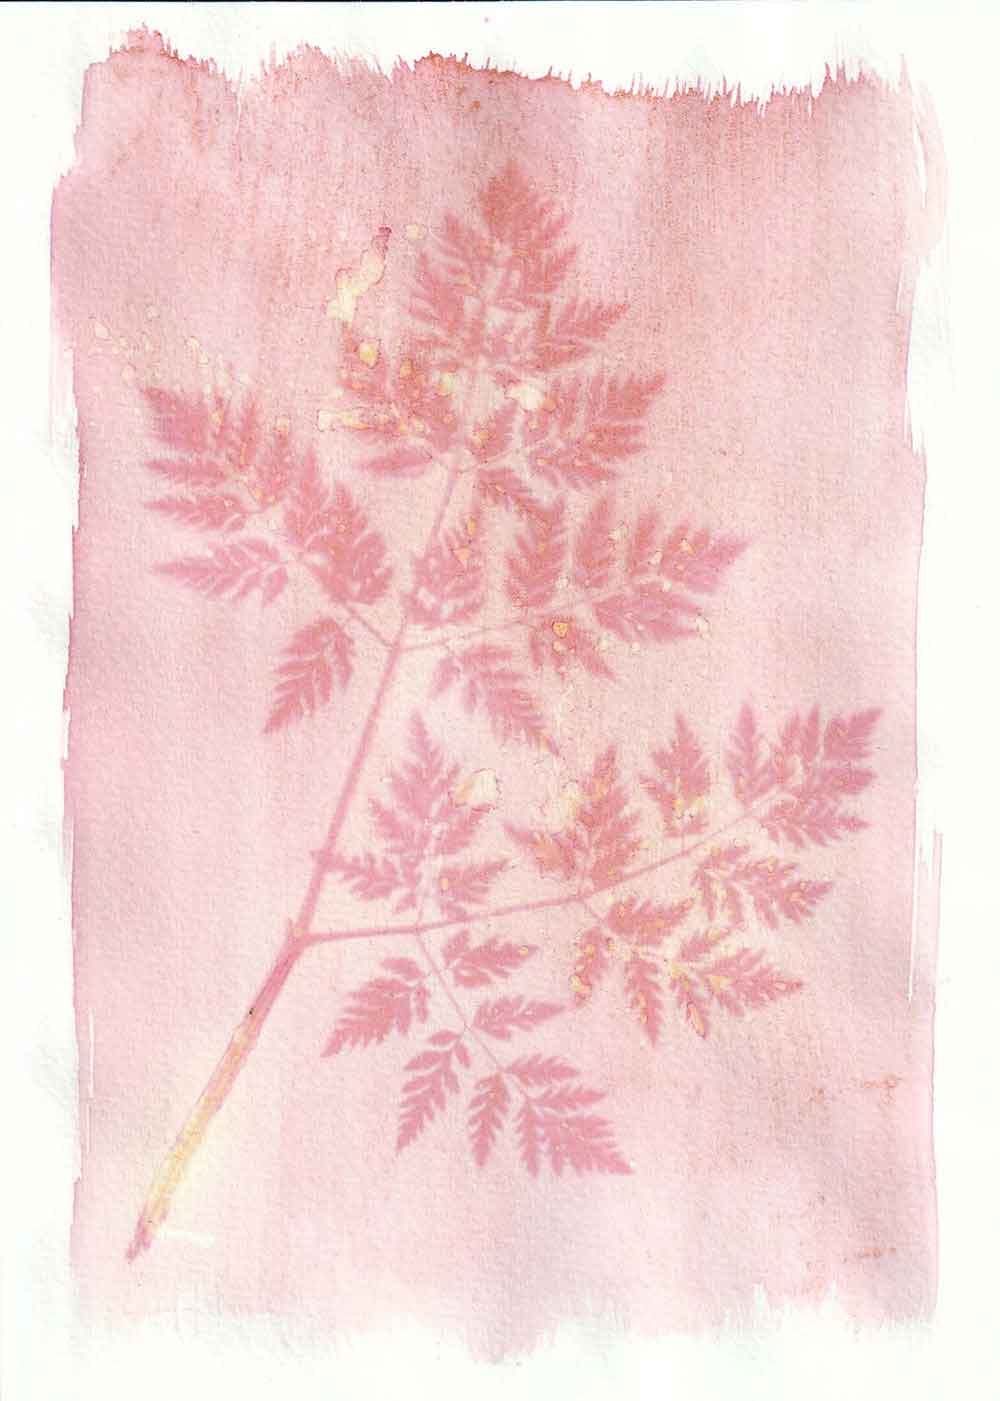 Cow parsley leaves anthotype prints by Tim Boddy